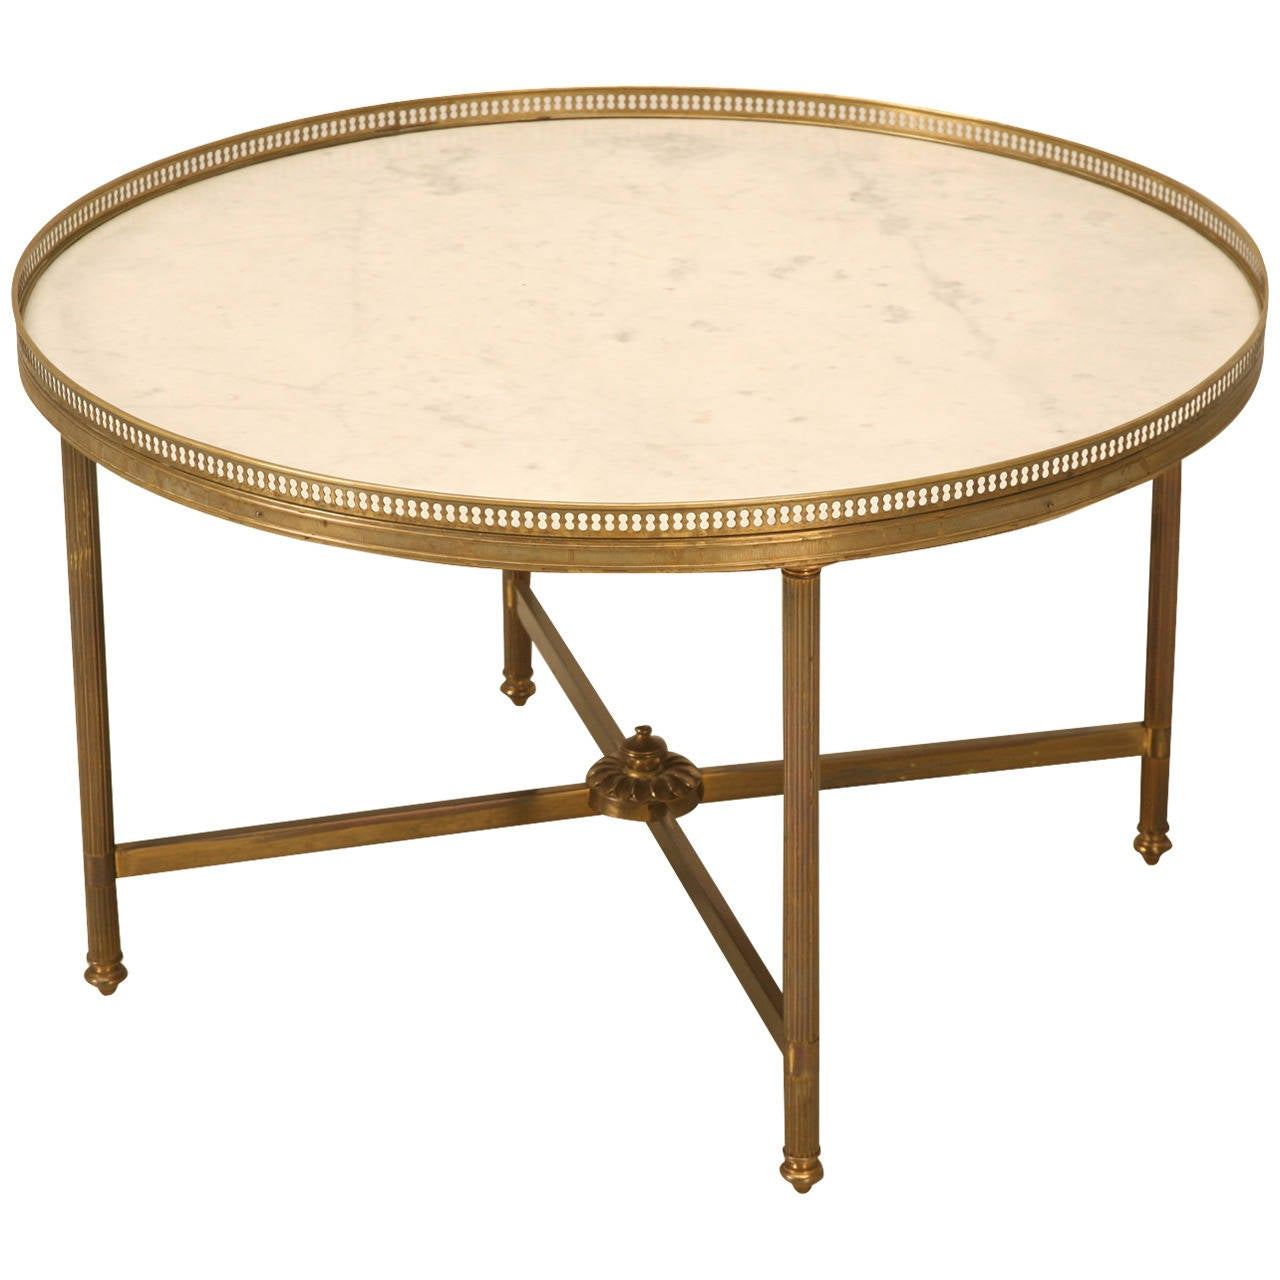 Vintage French Marble And Brass Cocktail Or Coffee Table At 1stdibs